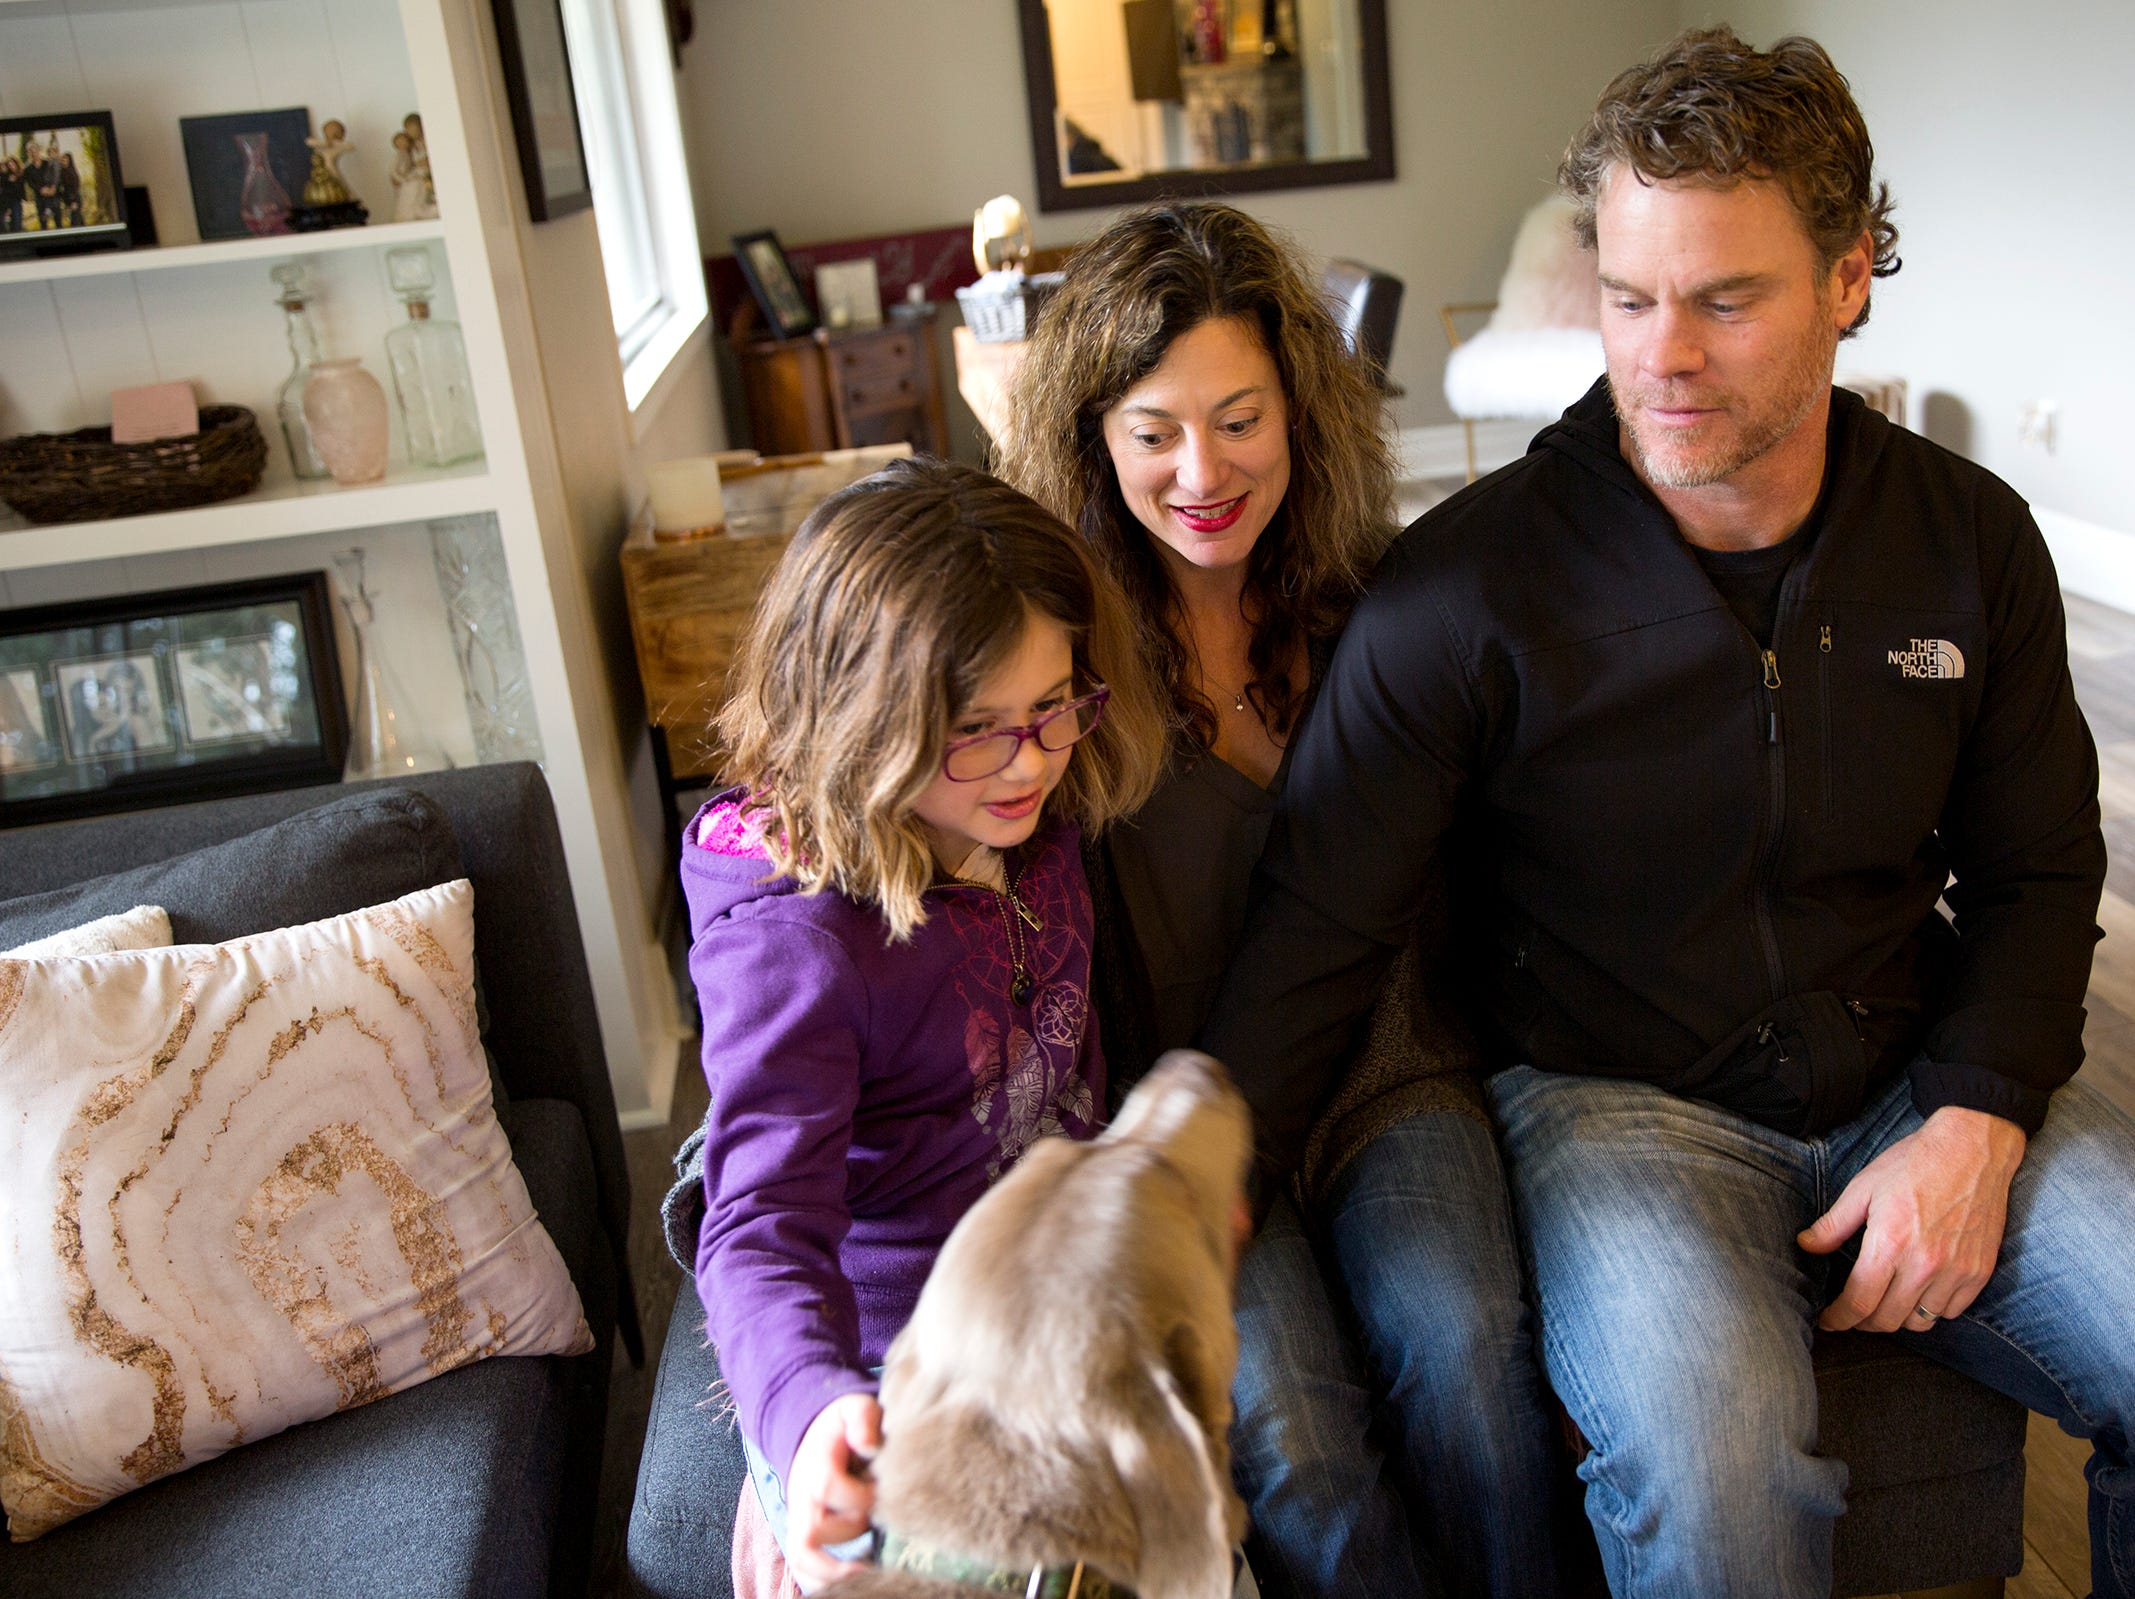 Haley Pollman, 9, and her parents Melissa Pollman and Dean Pollman pet their dog Gary at their home in Salem on Saturday, Feb. 23, 2019.